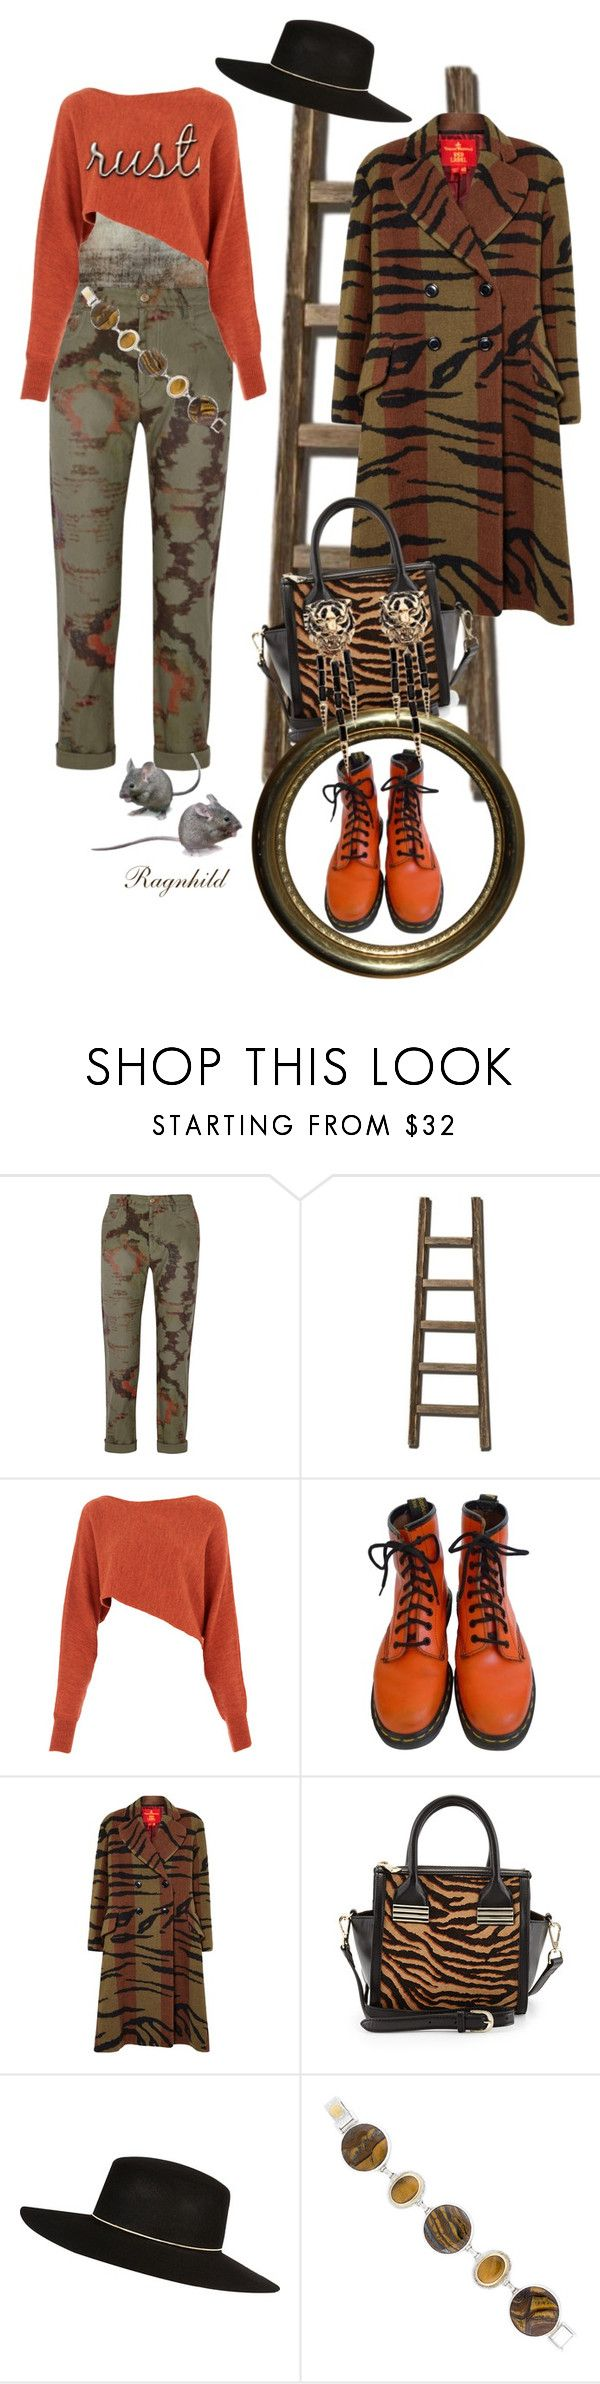 """""""Dagen antrekk / Today's Outfit TIGER"""" by ragnh-mjos ❤ liked on Polyvore featuring Helmut Lang, Étoile Isabel Marant, Crea Concept, Dr. Martens, Sondra Roberts, River Island, Gurhan, Roberto Cavalli and outfitoftheday"""